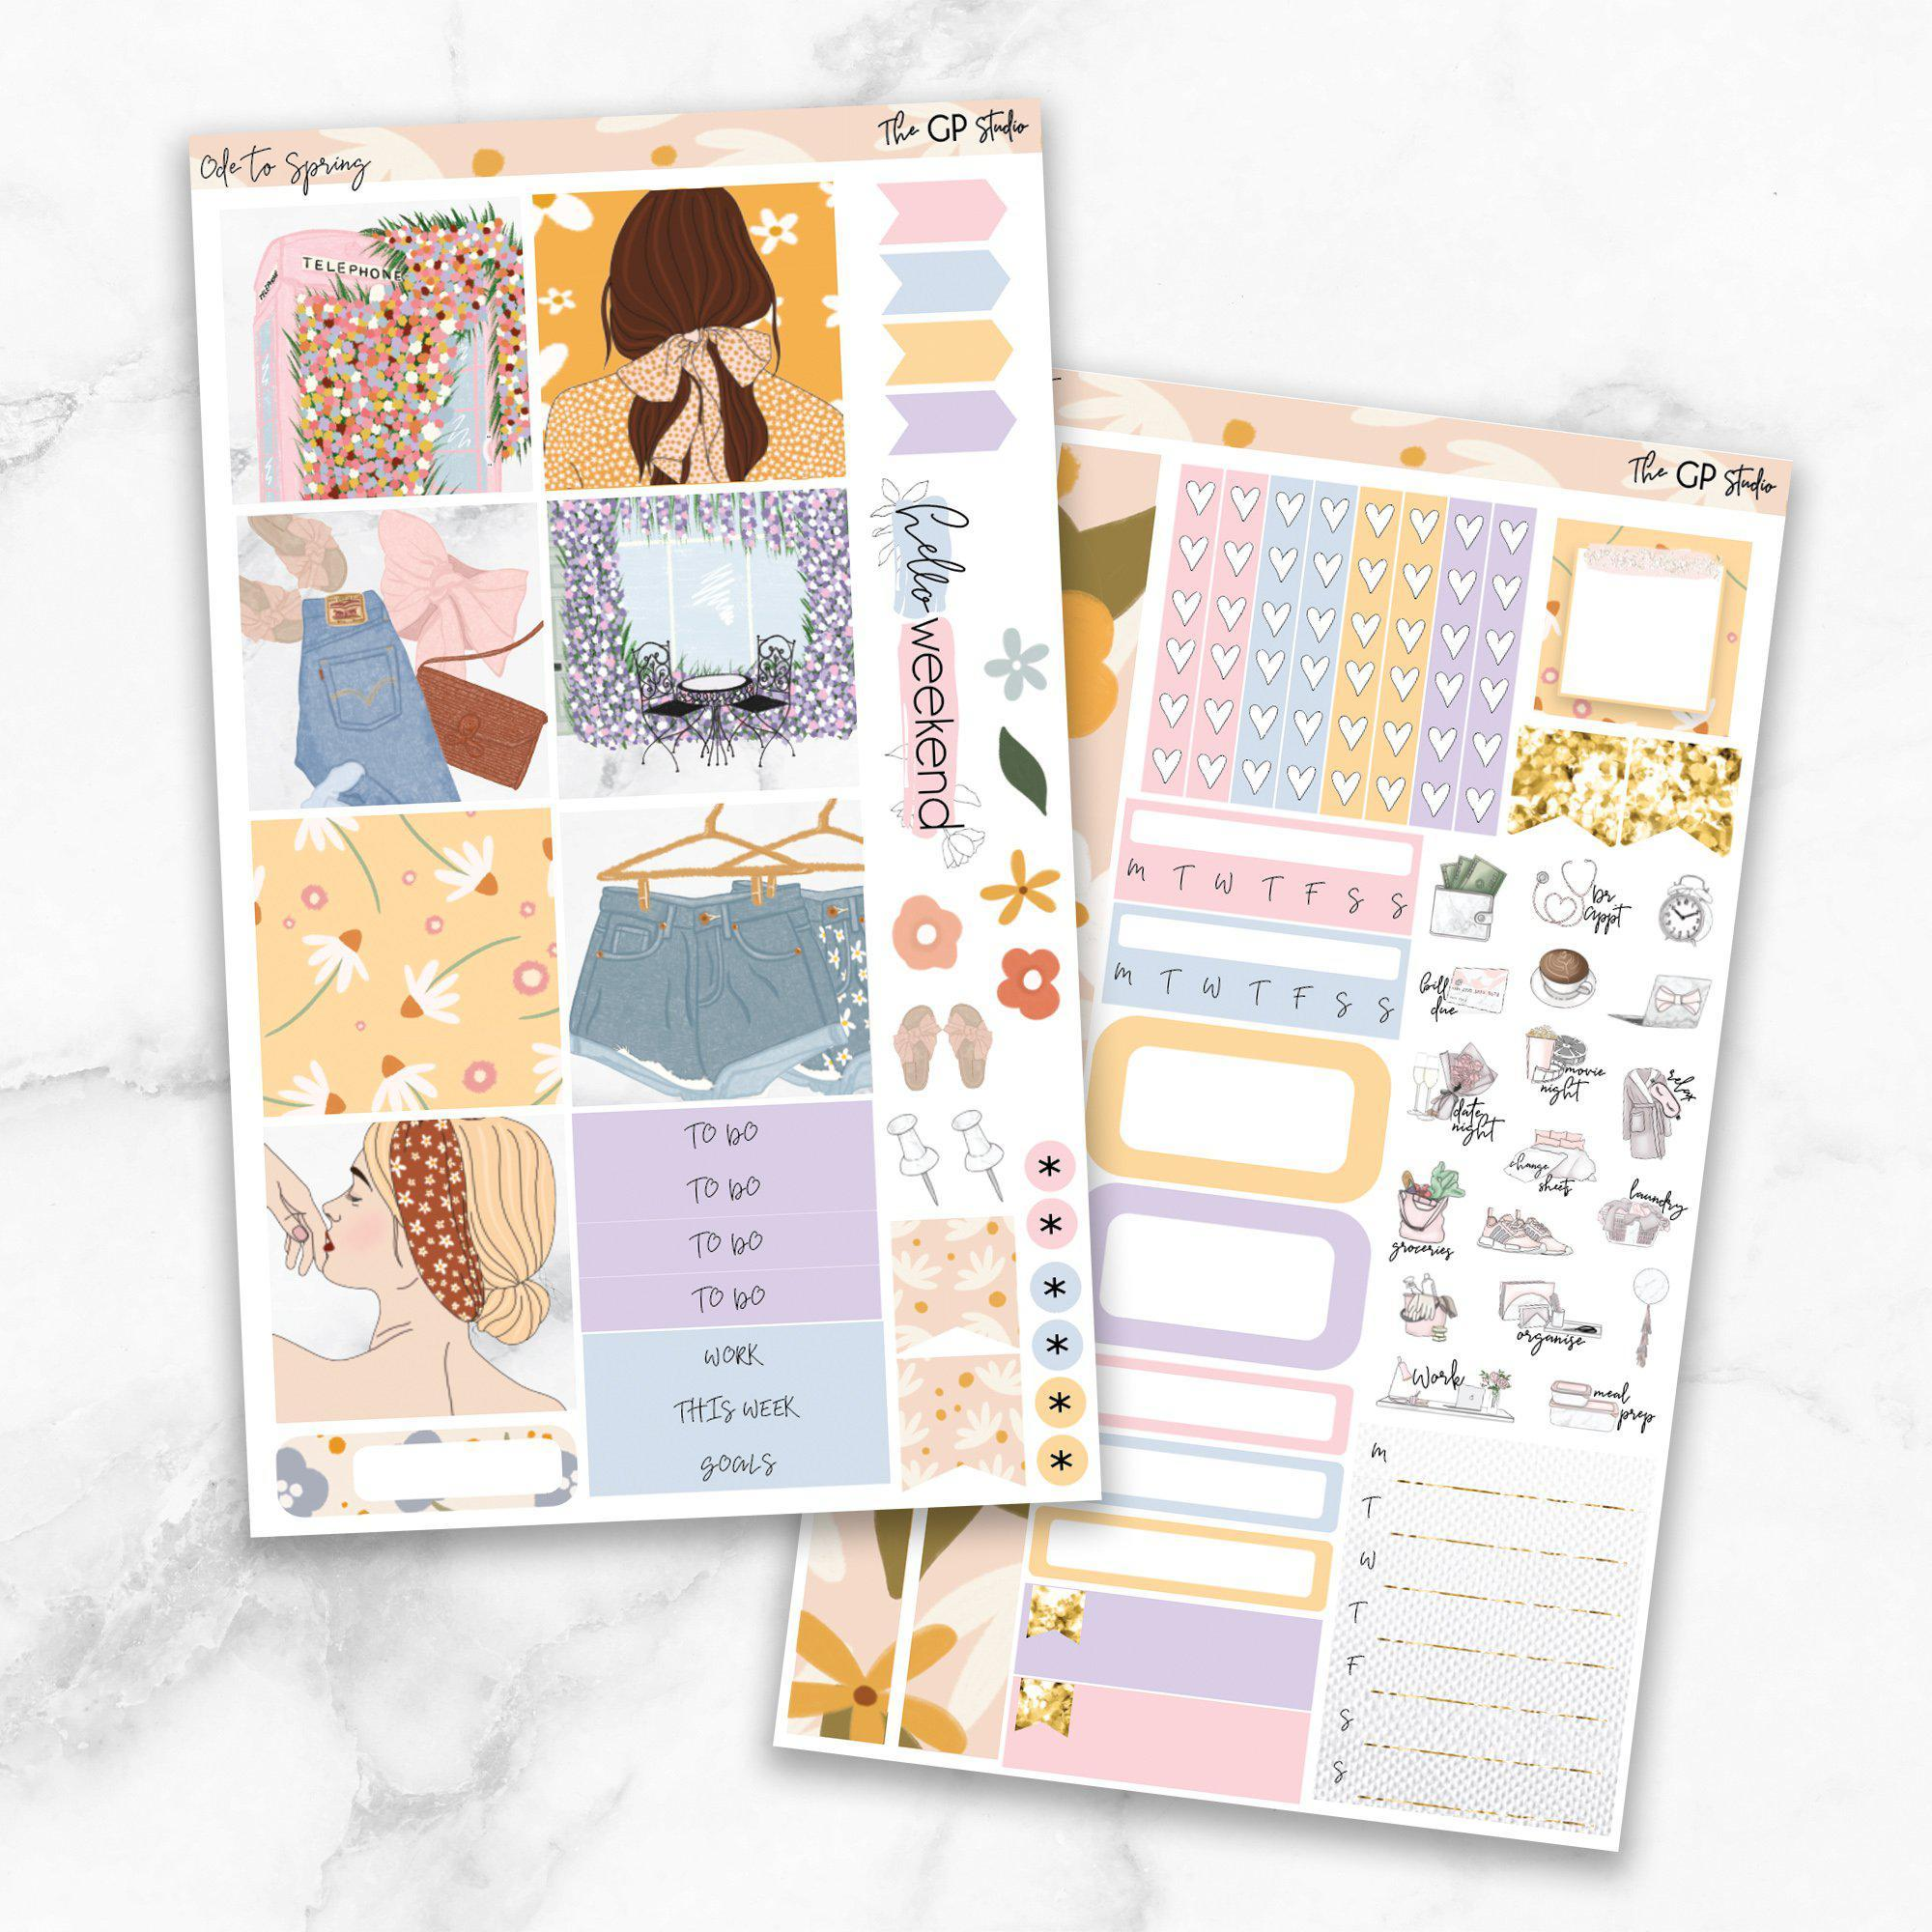 ODE TO SPRING Mini Size Planner Sticker Kit-The GP Studio